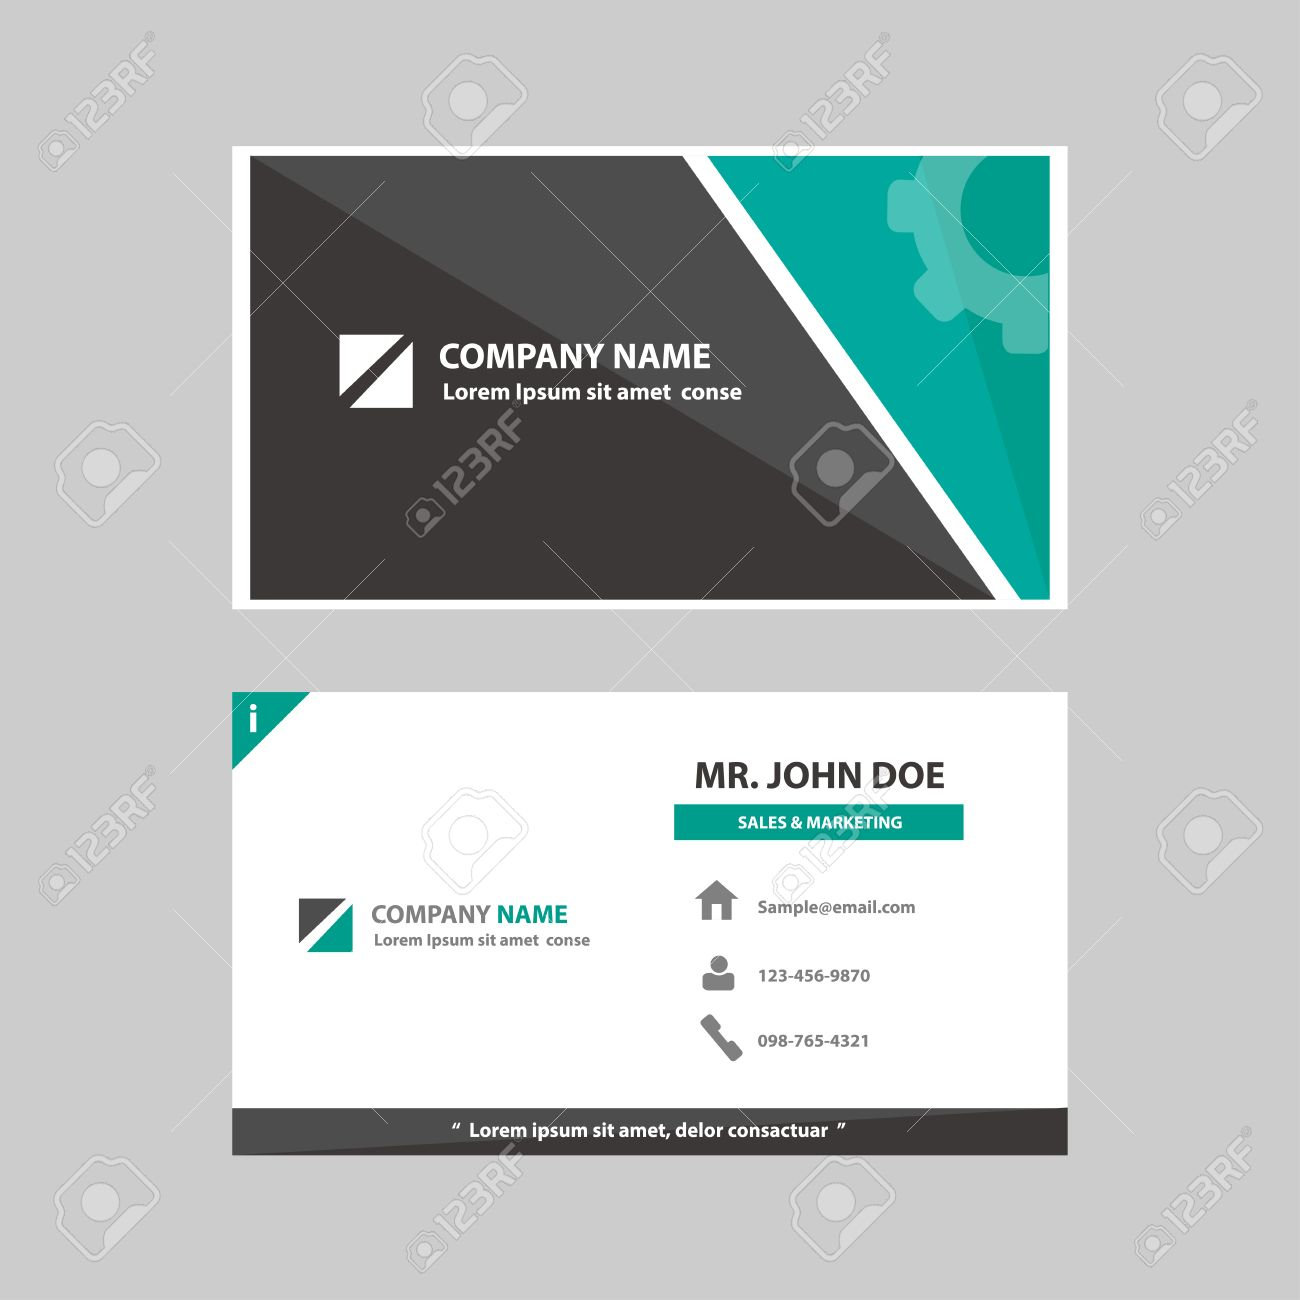 Green and black multipurpose business profile card template flat green and black multipurpose business profile card template flat design for company advertising introduce marketing recruitment friedricerecipe Image collections